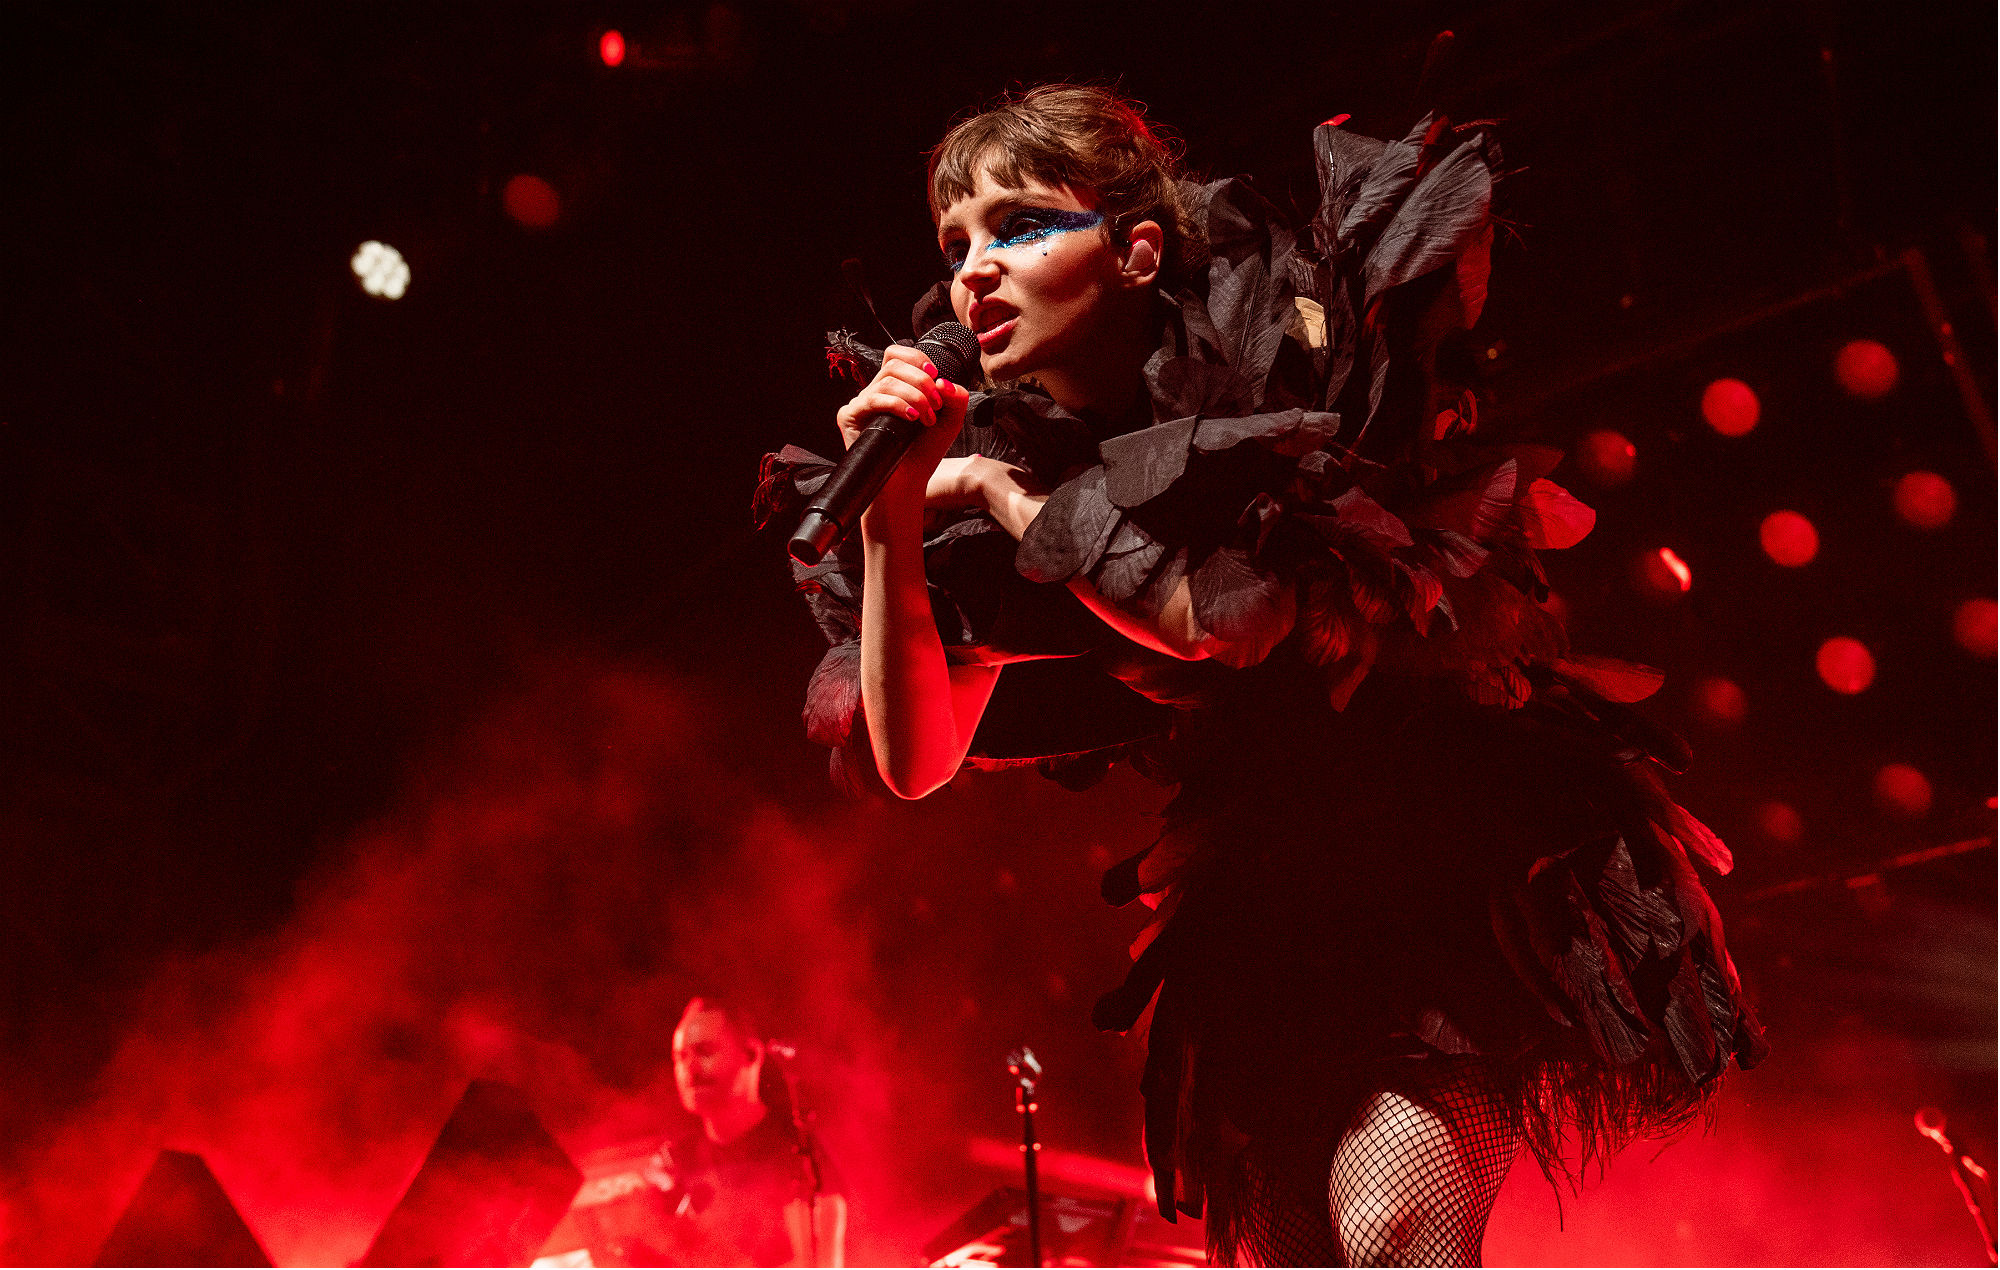 """Chvrches' Lauren Mayberry shuts down critics who think her stage outfits are """"too revealing"""""""